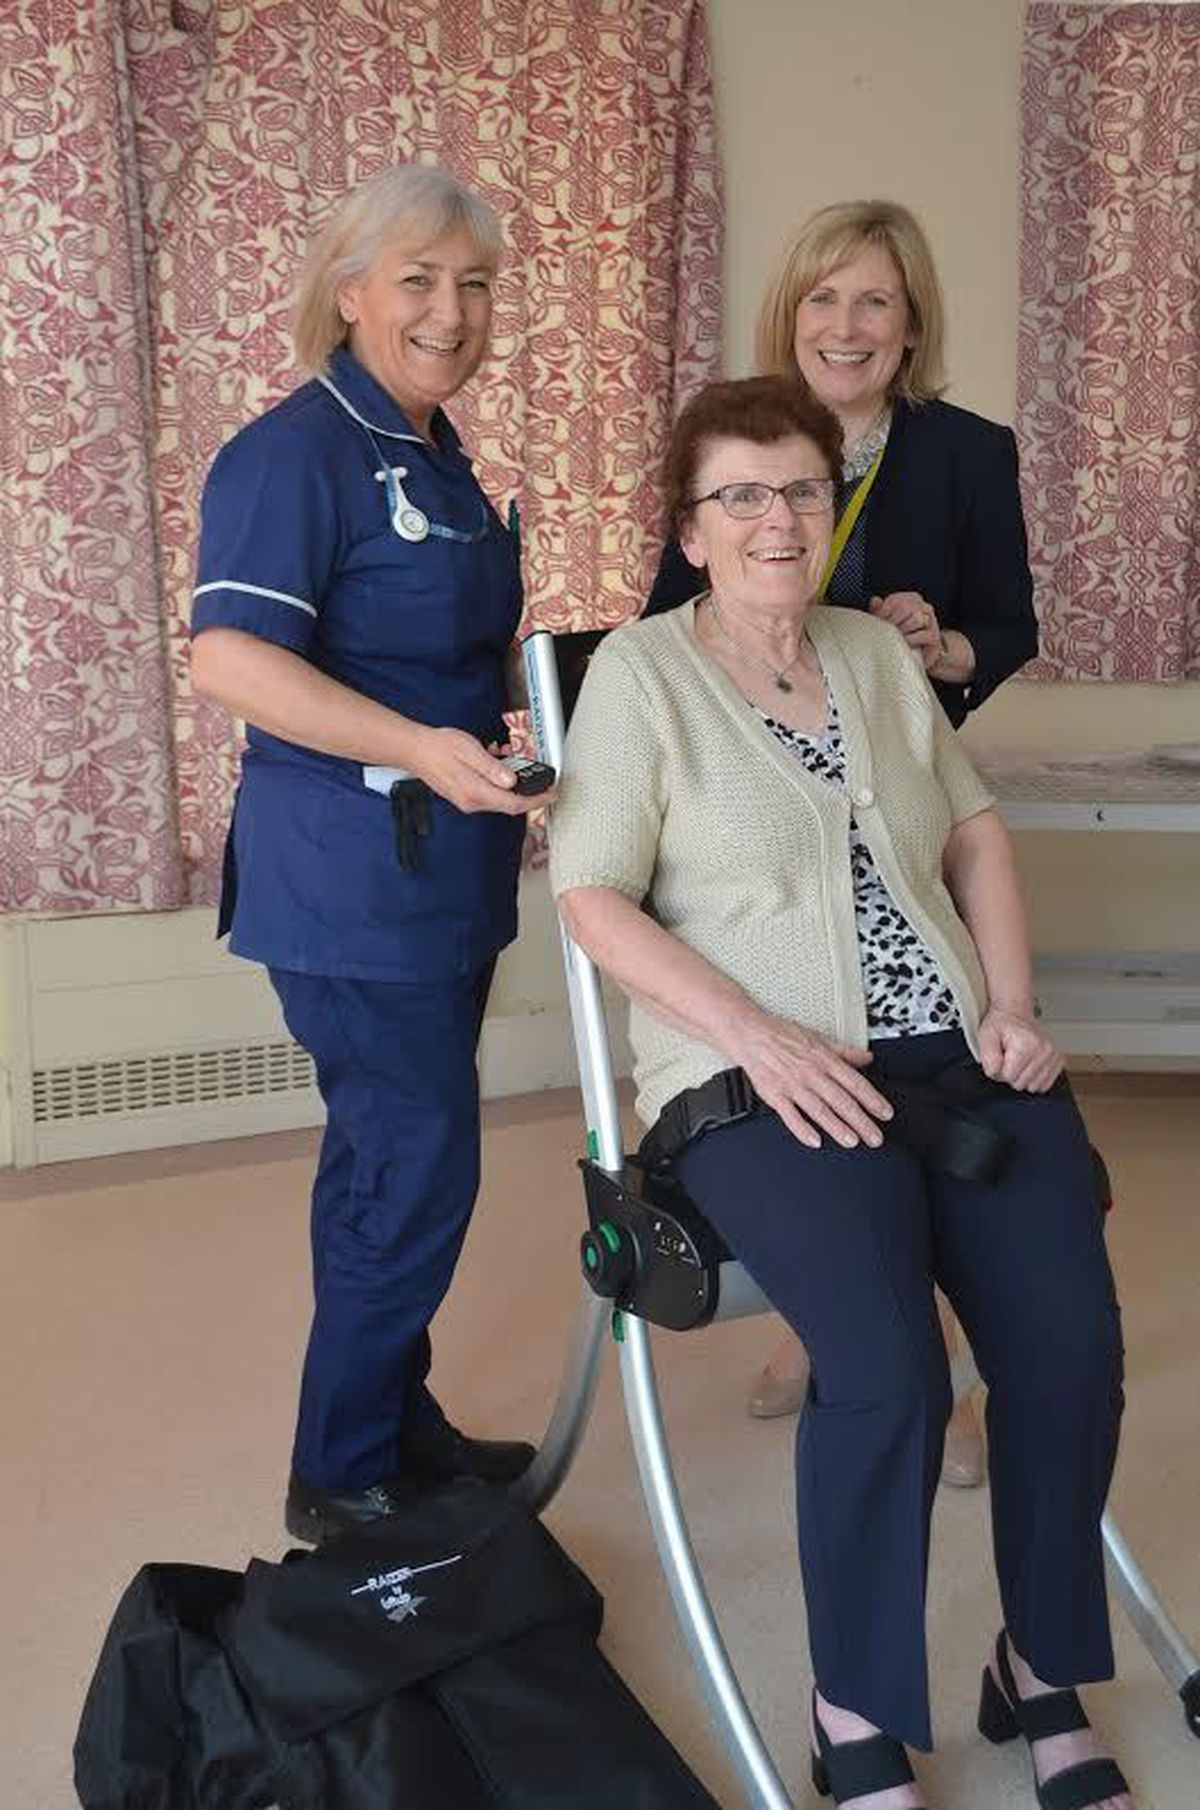 Testing the chair are from left, Linda Head, Moving and Handling Co-ordinator at Orthopaedic Hospital, Elaine Tinsley, Accounts Officer and Victoria Sugden, Charity Director of The League of Friends.